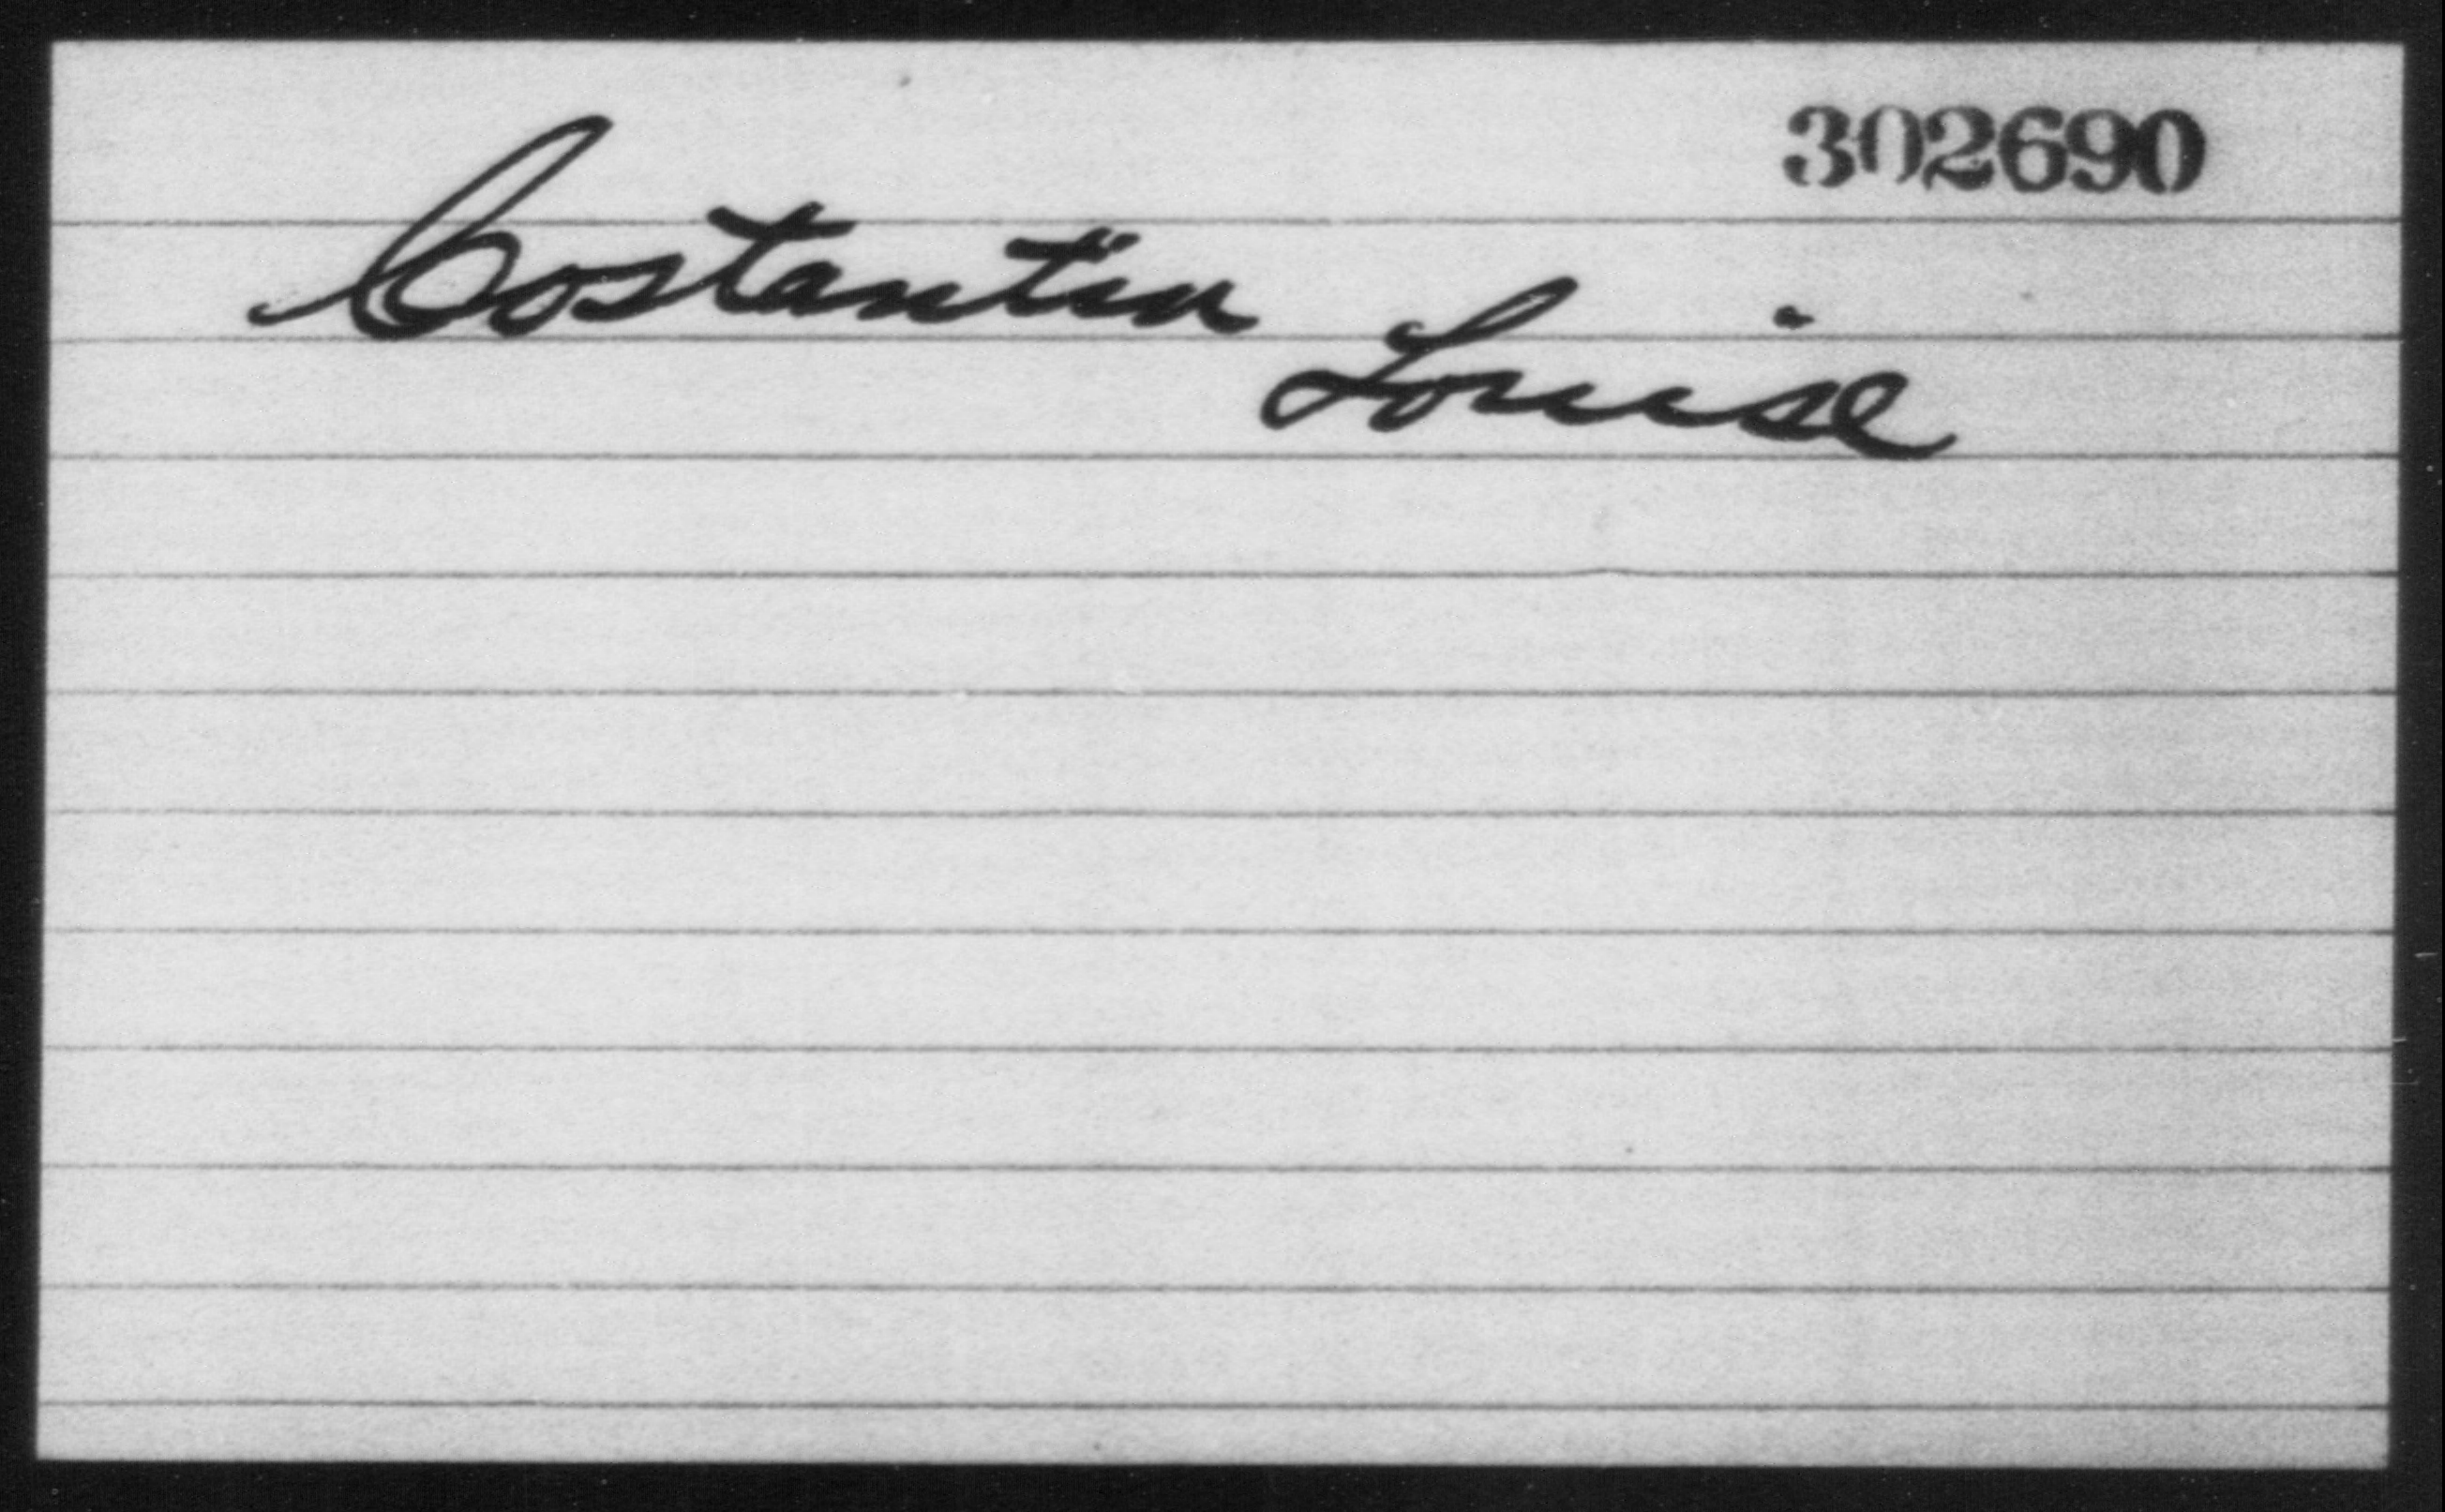 Costantin, Louise - Born: [BLANK], Naturalized: [BLANK]